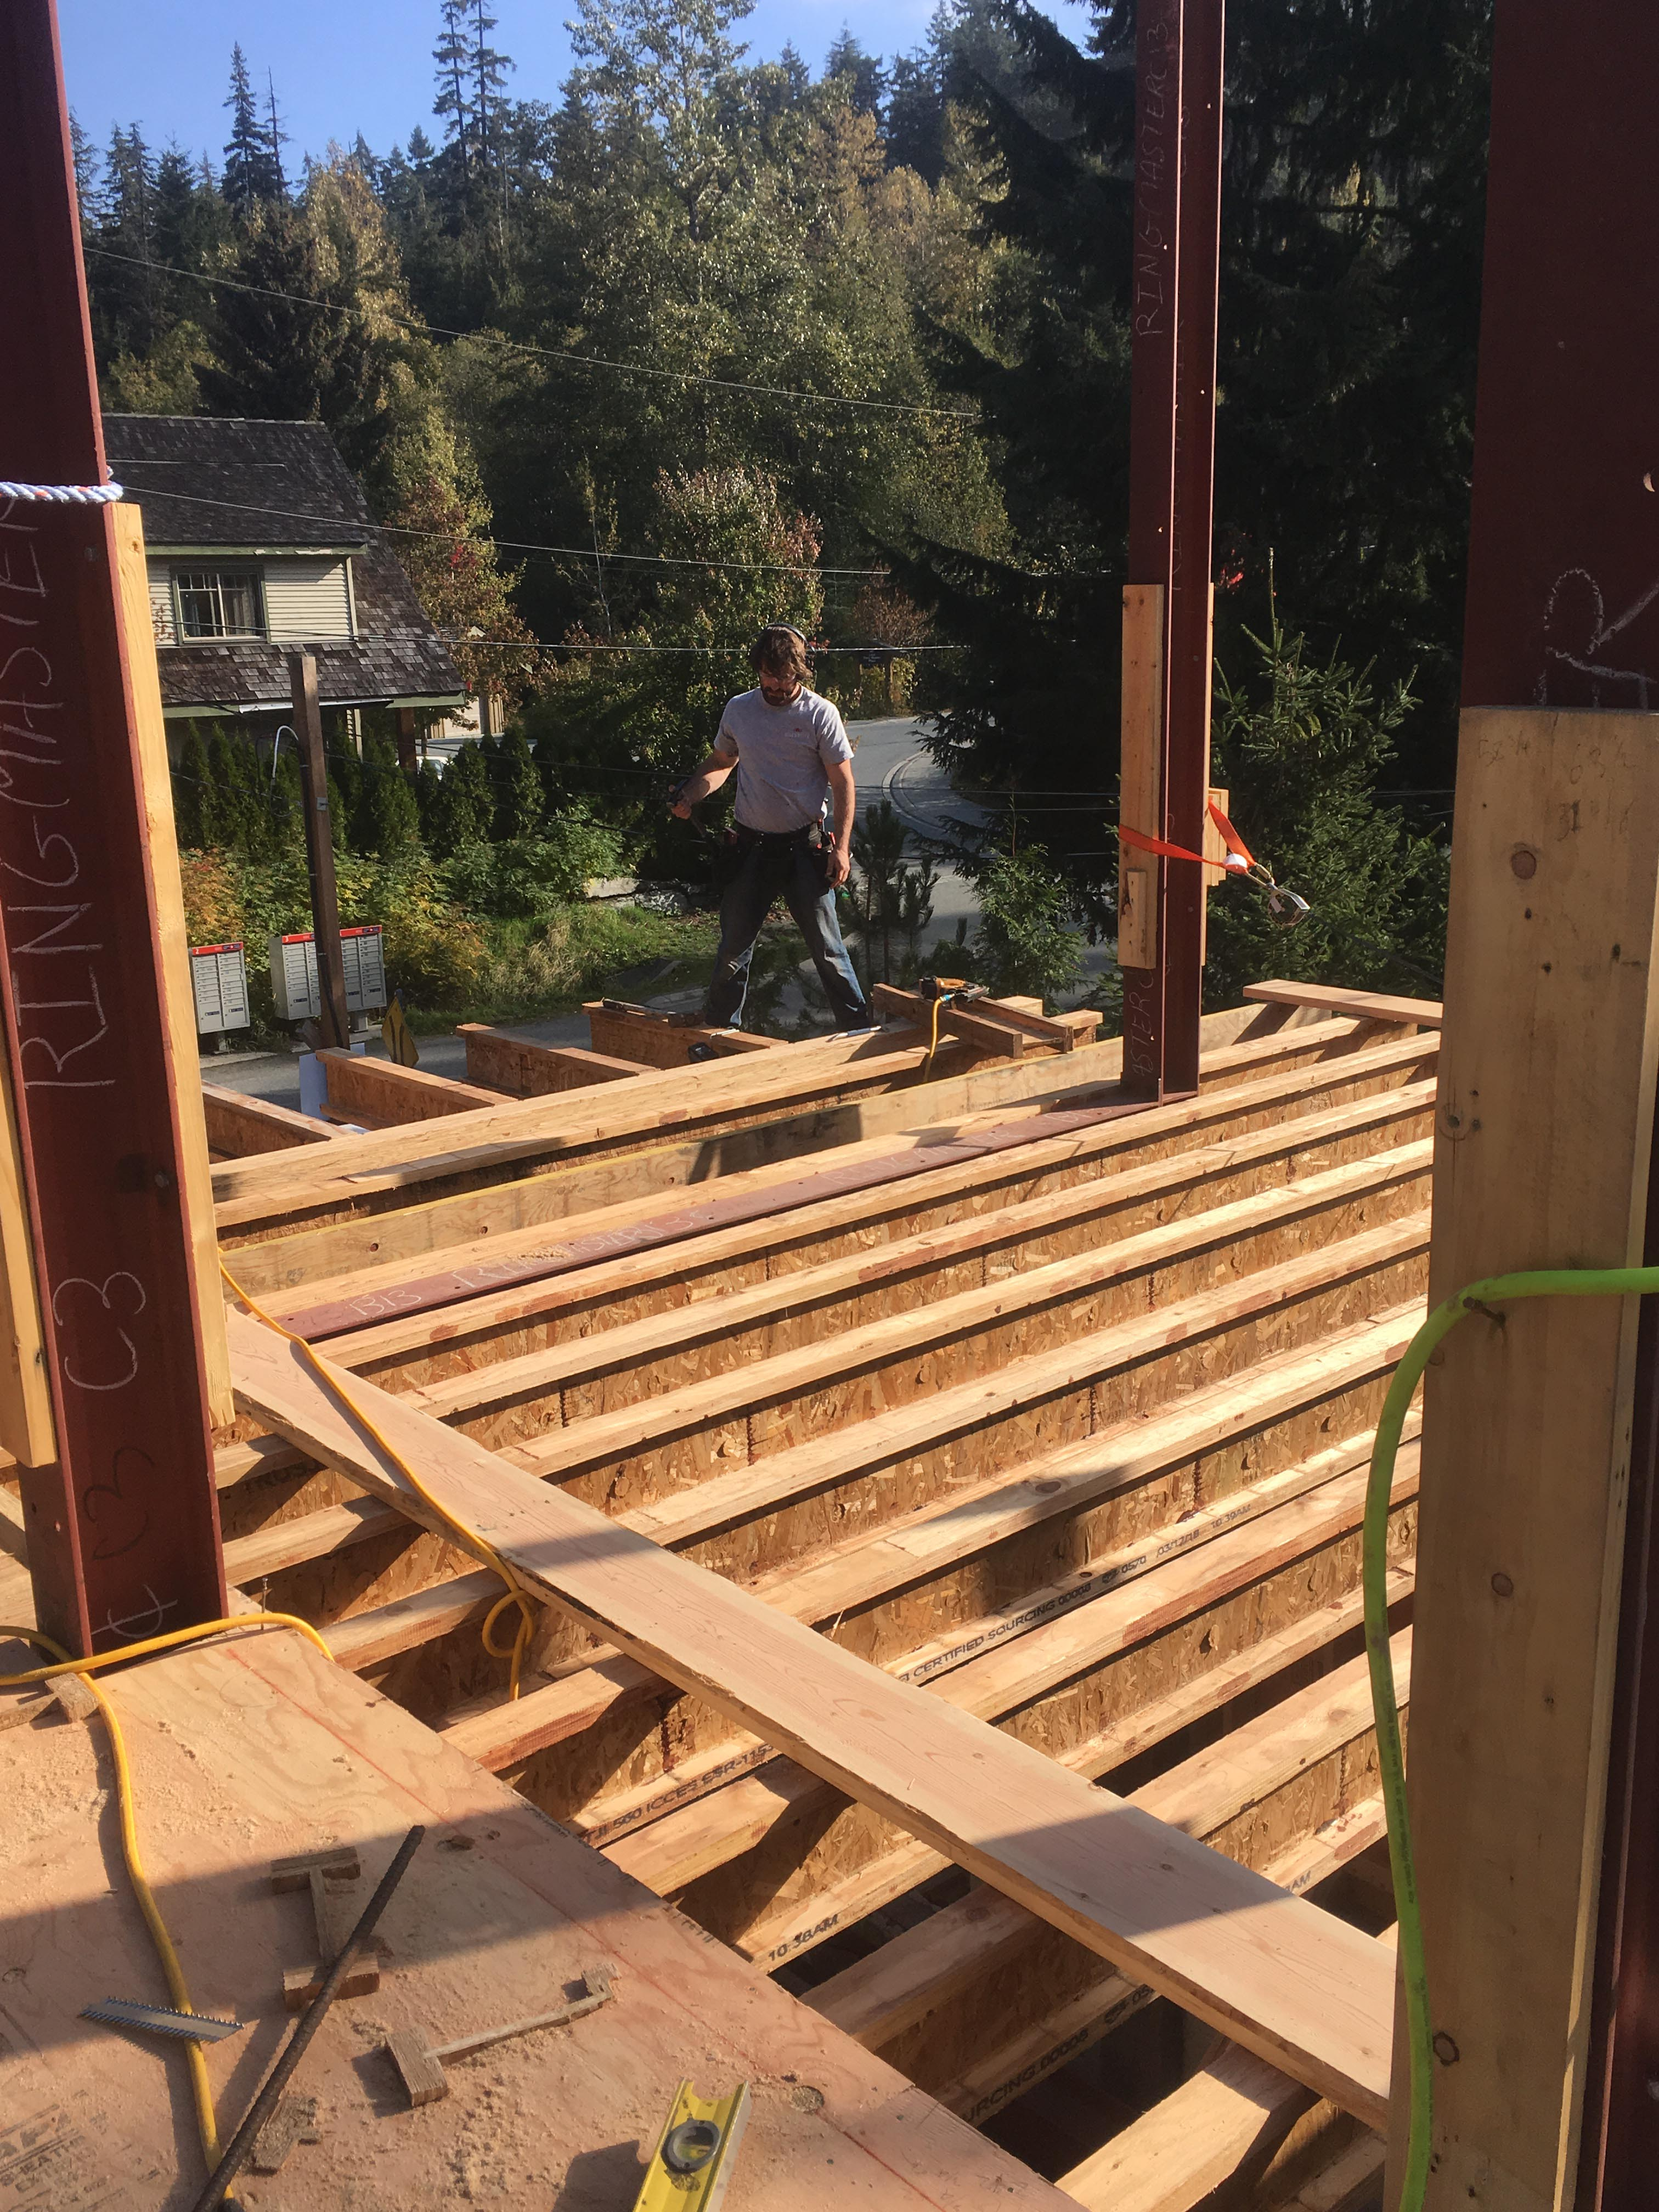 Pound 4 Pound, Framing and Forming, worker framing